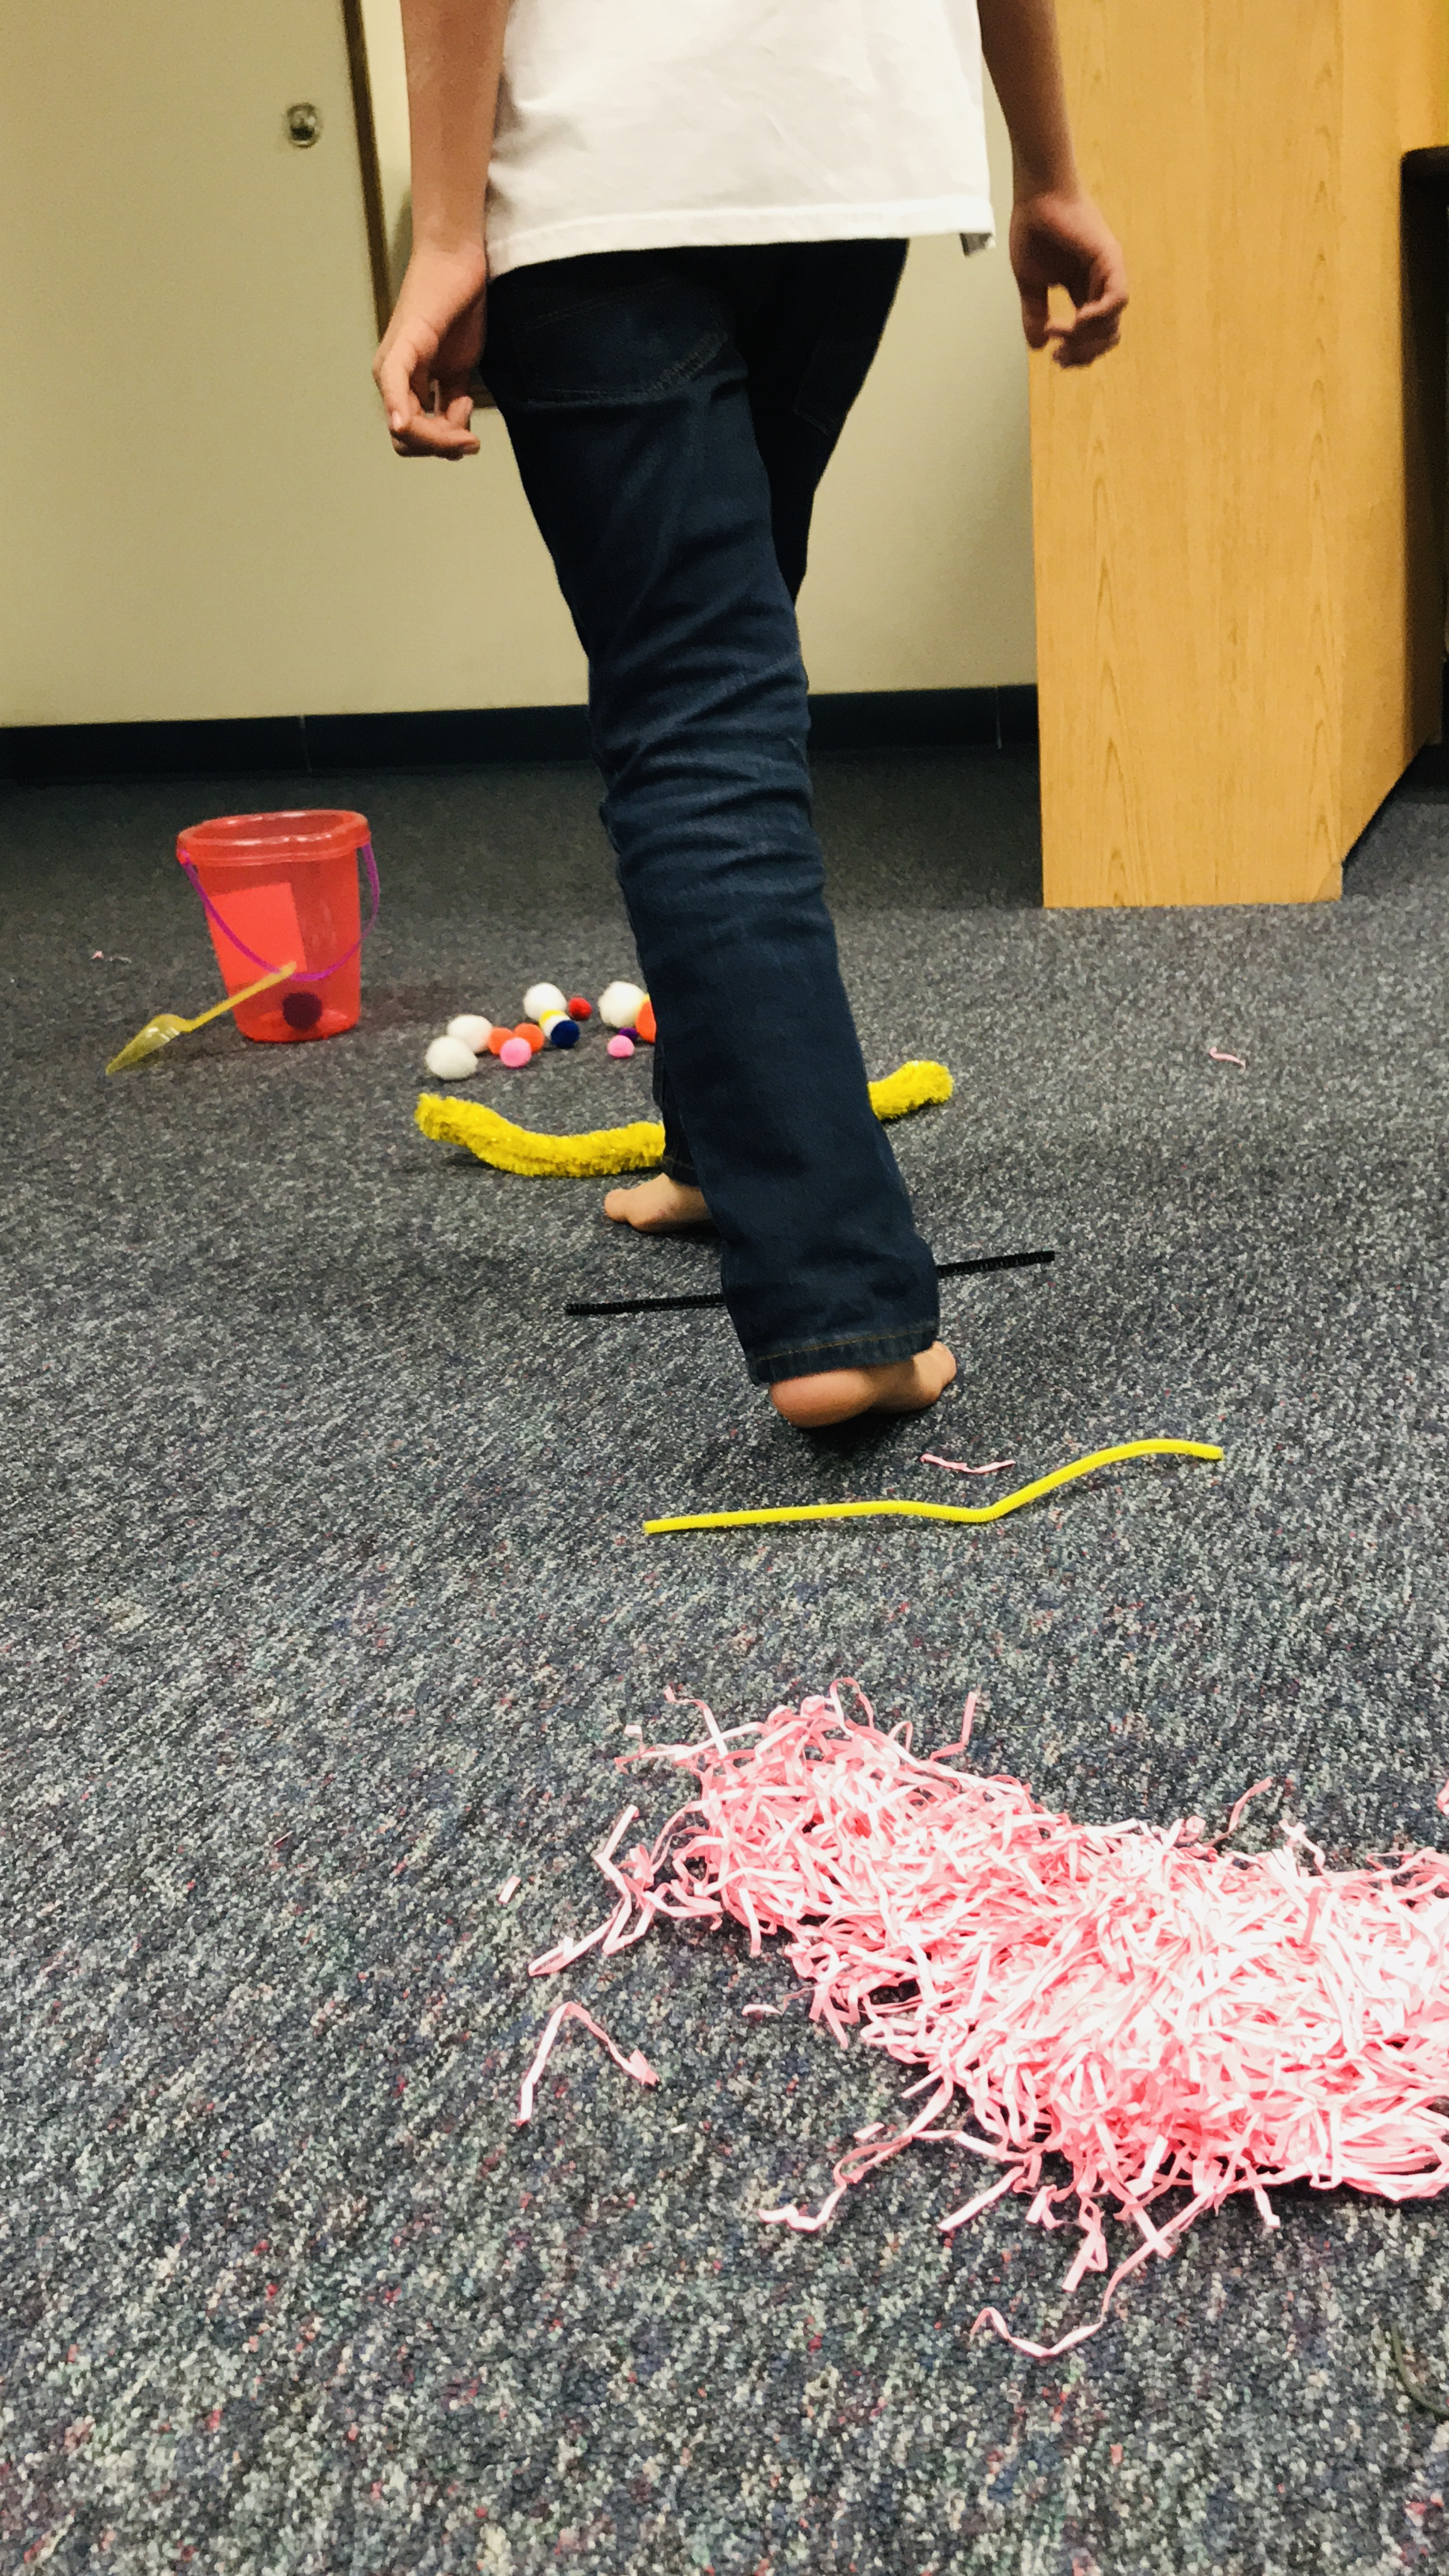 Walking over various string items on carpet